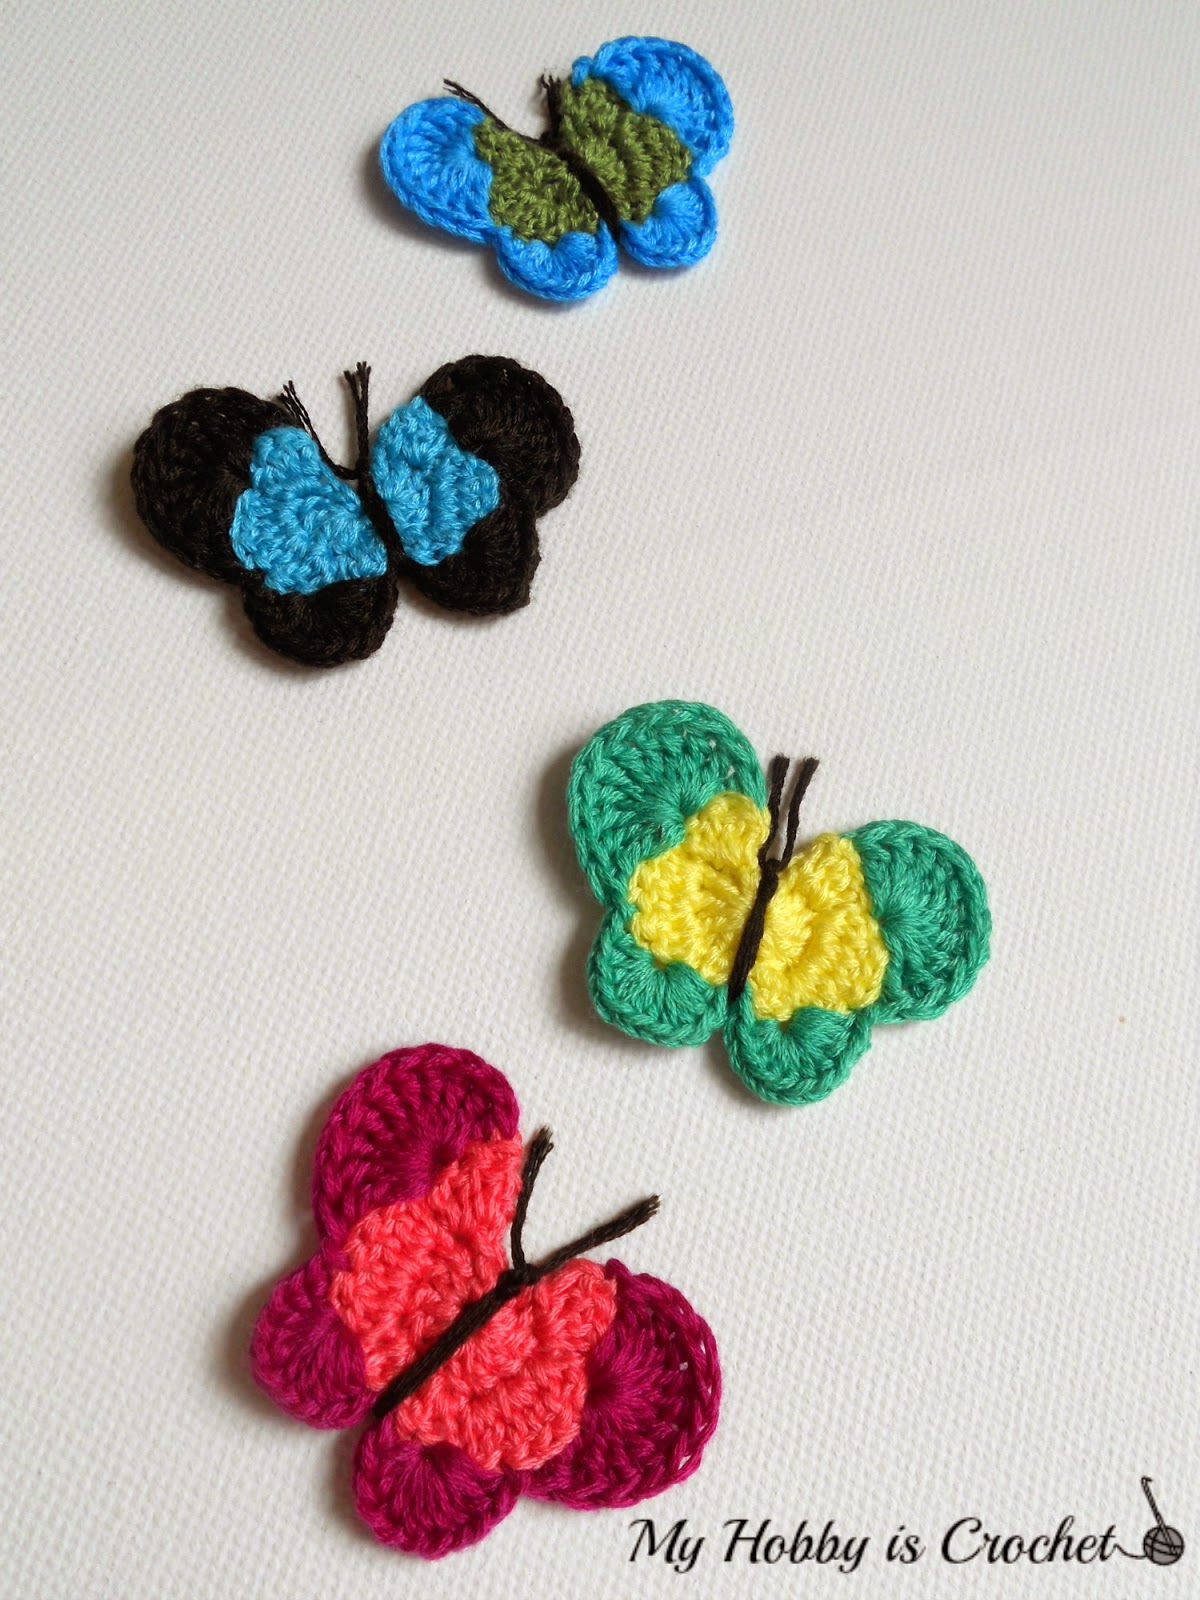 My Hobby Is Crochet: Crochet Butterfly Applique Free ...